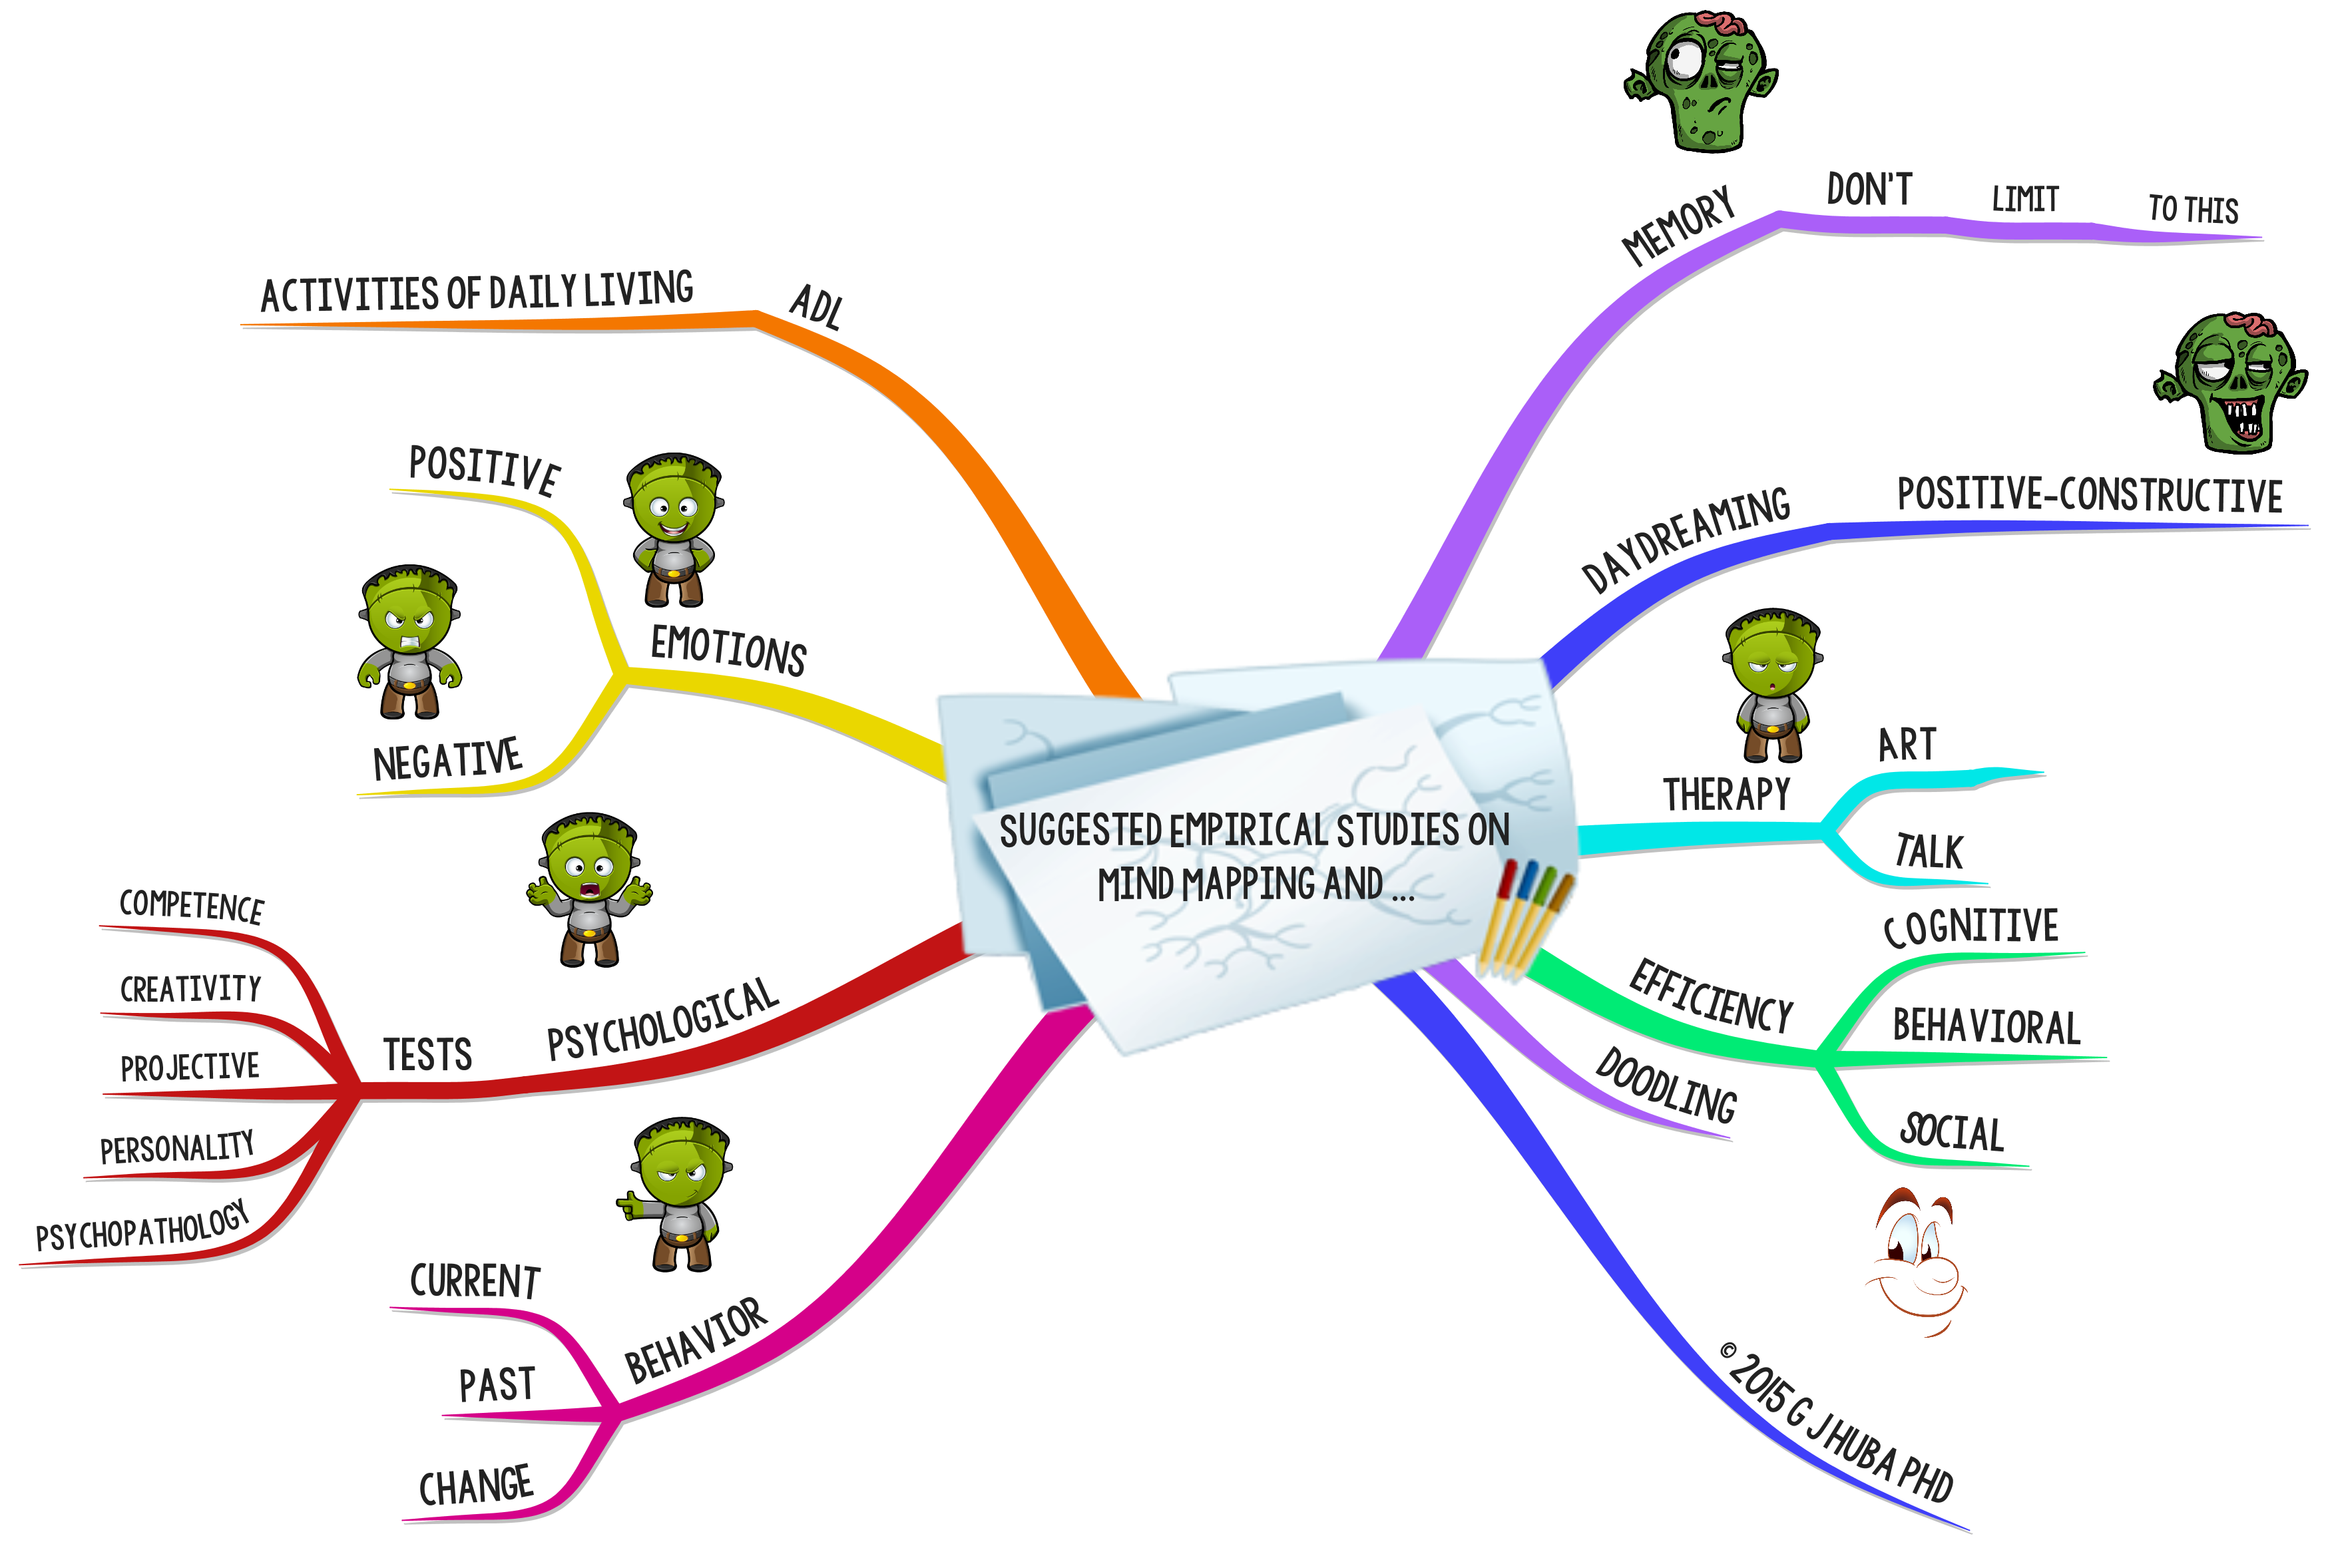 2Suggested Empirical Studies on  Mind Mapping and ...